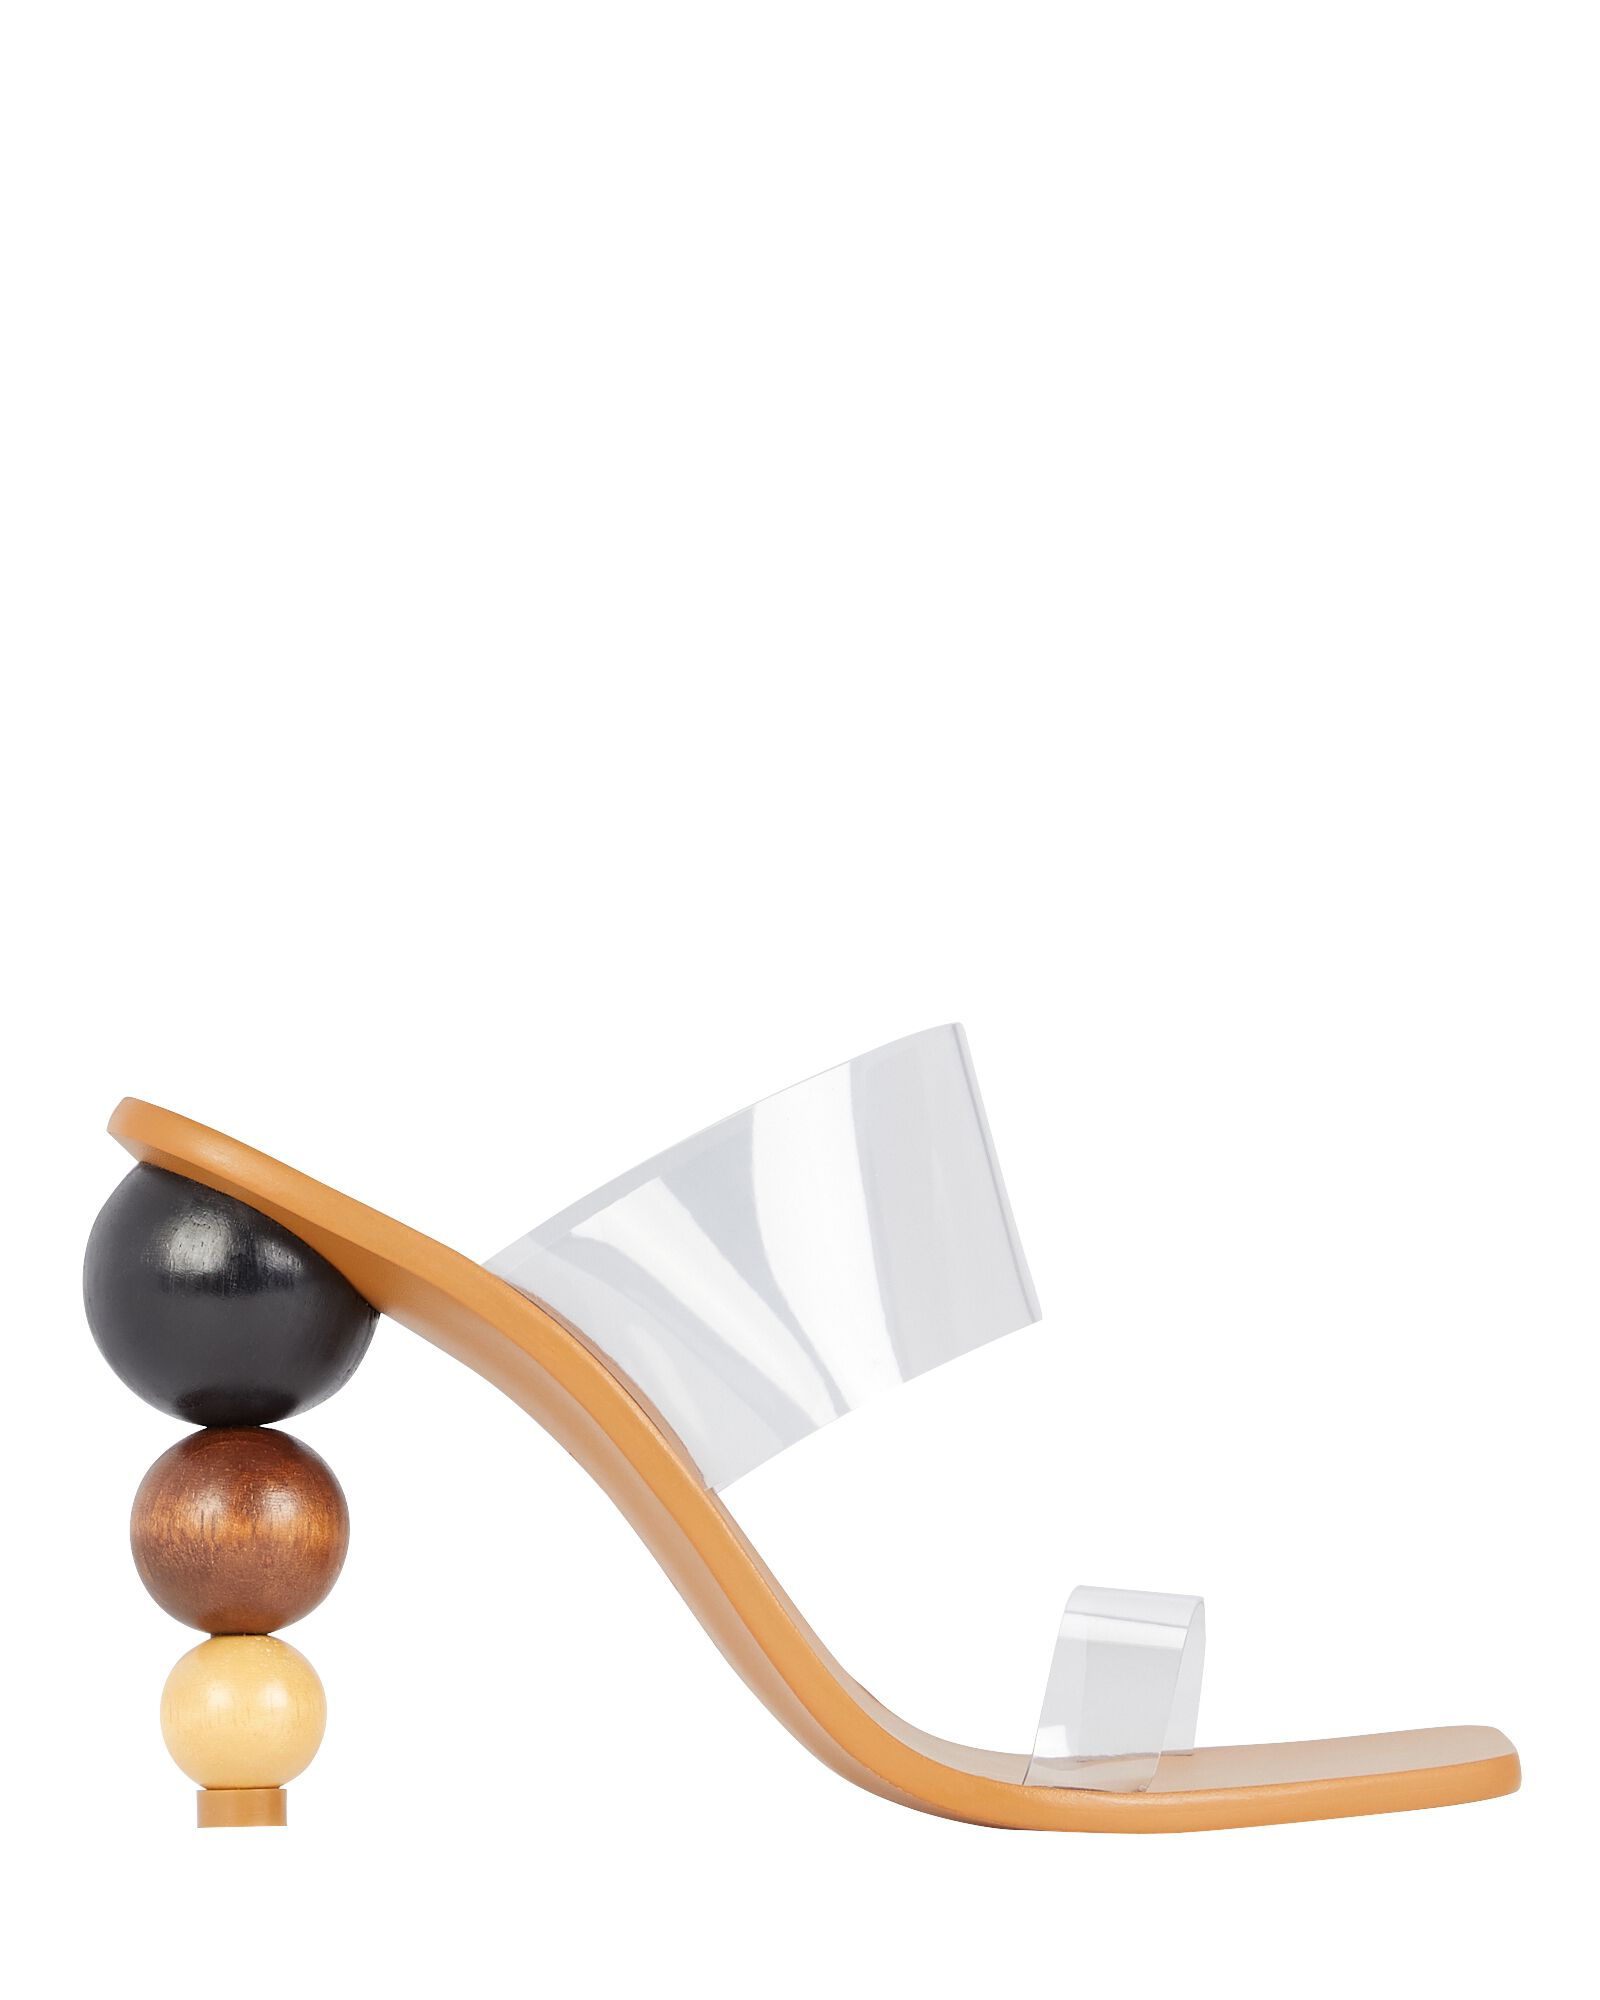 Vita PVC Slide Sandals, BROWN, hi-res